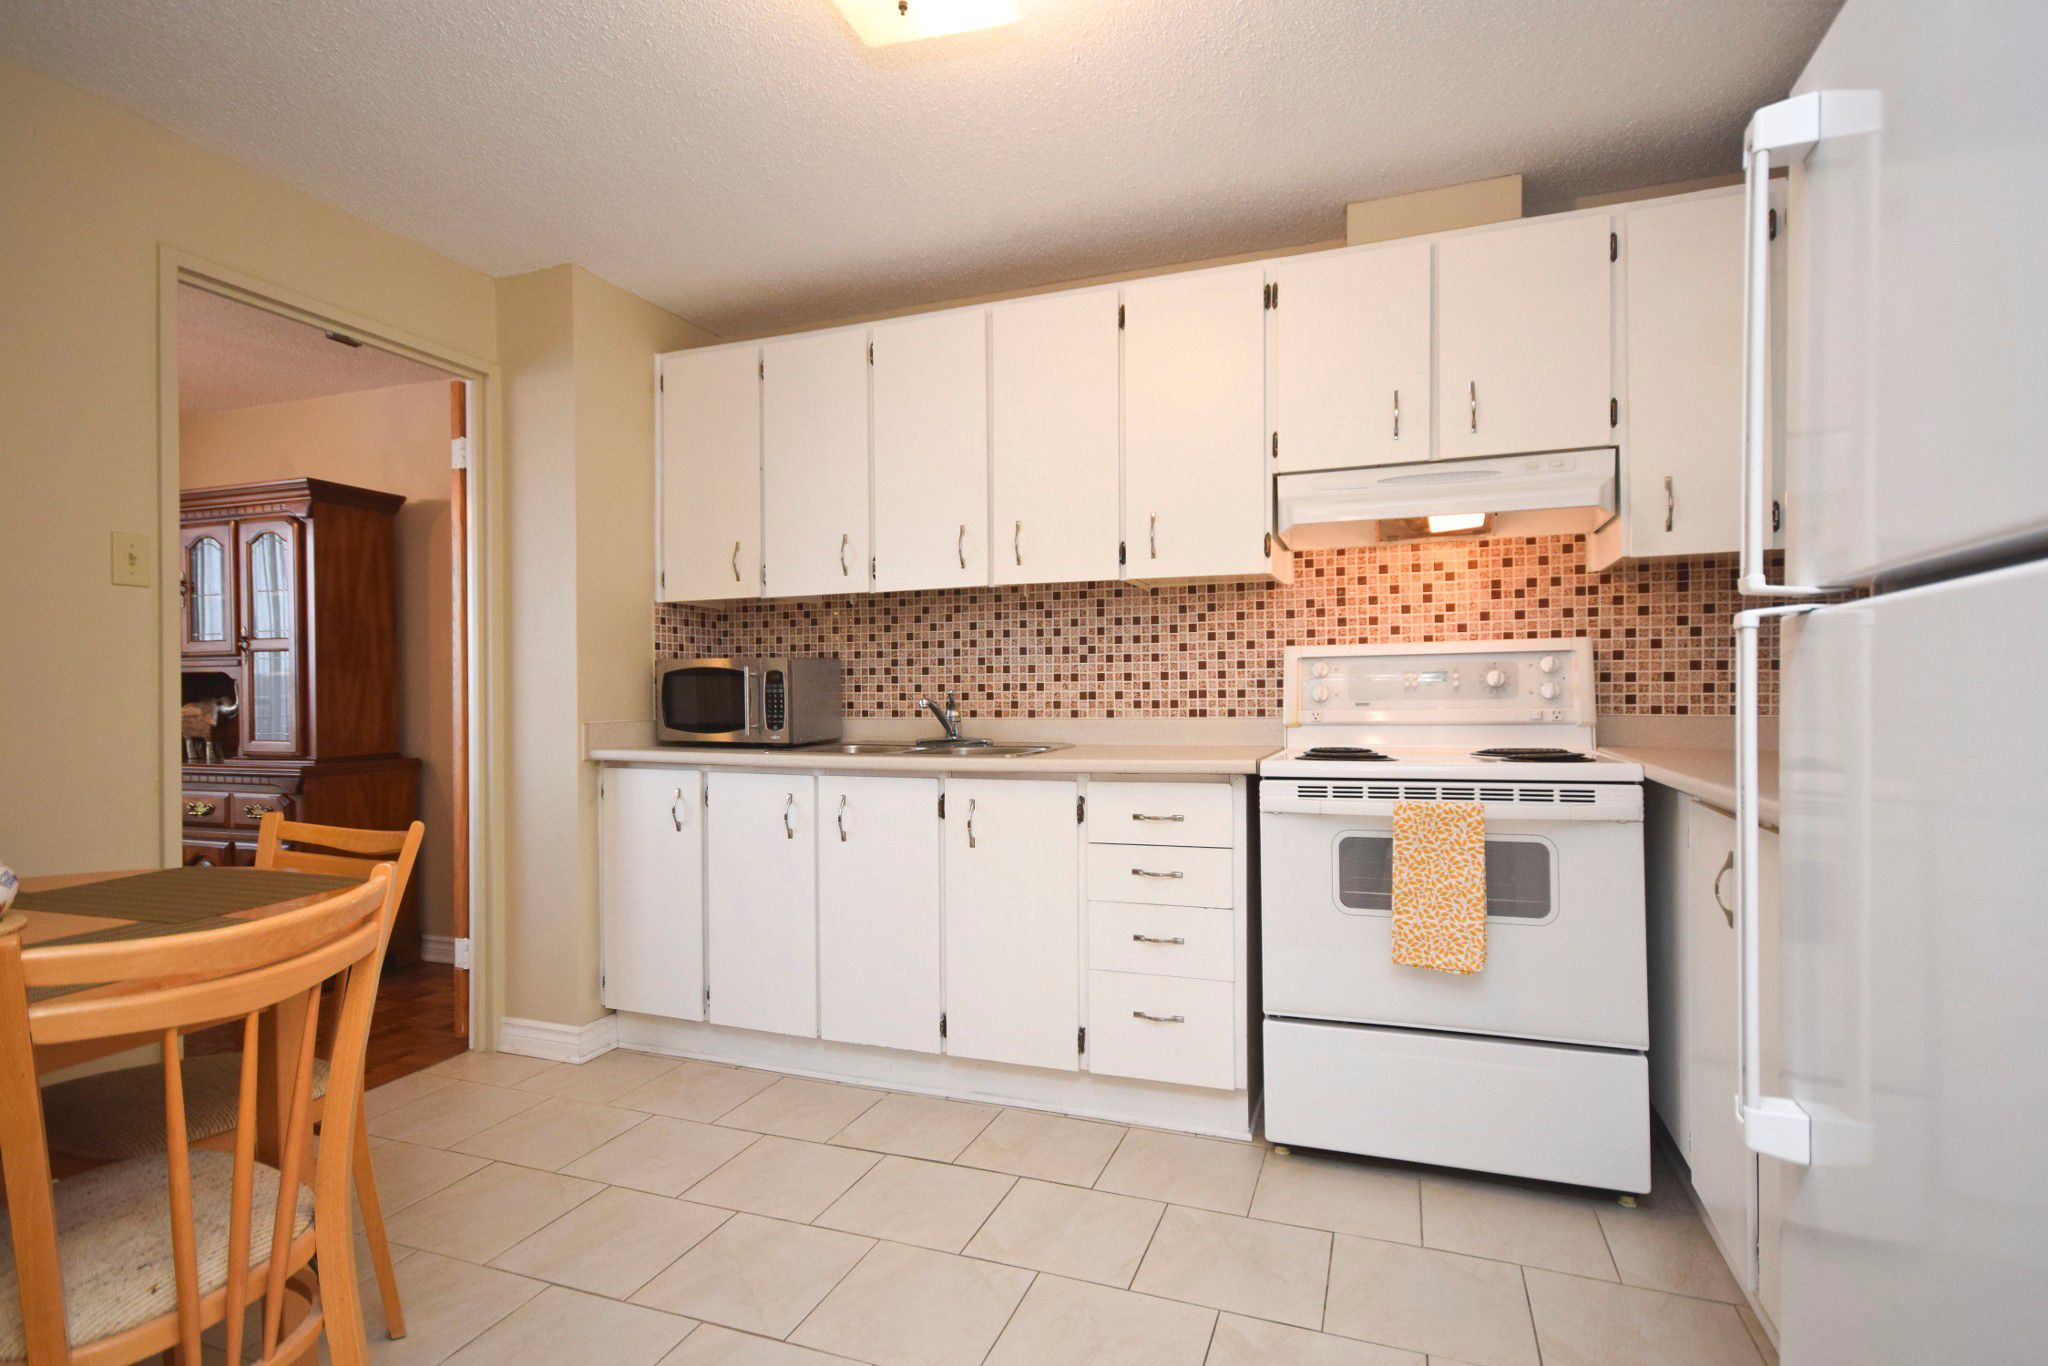 Photo 27: Photos: 515 1465 BASELINE Road in Ottawa: Copeland Park House for sale : MLS®# 1133550